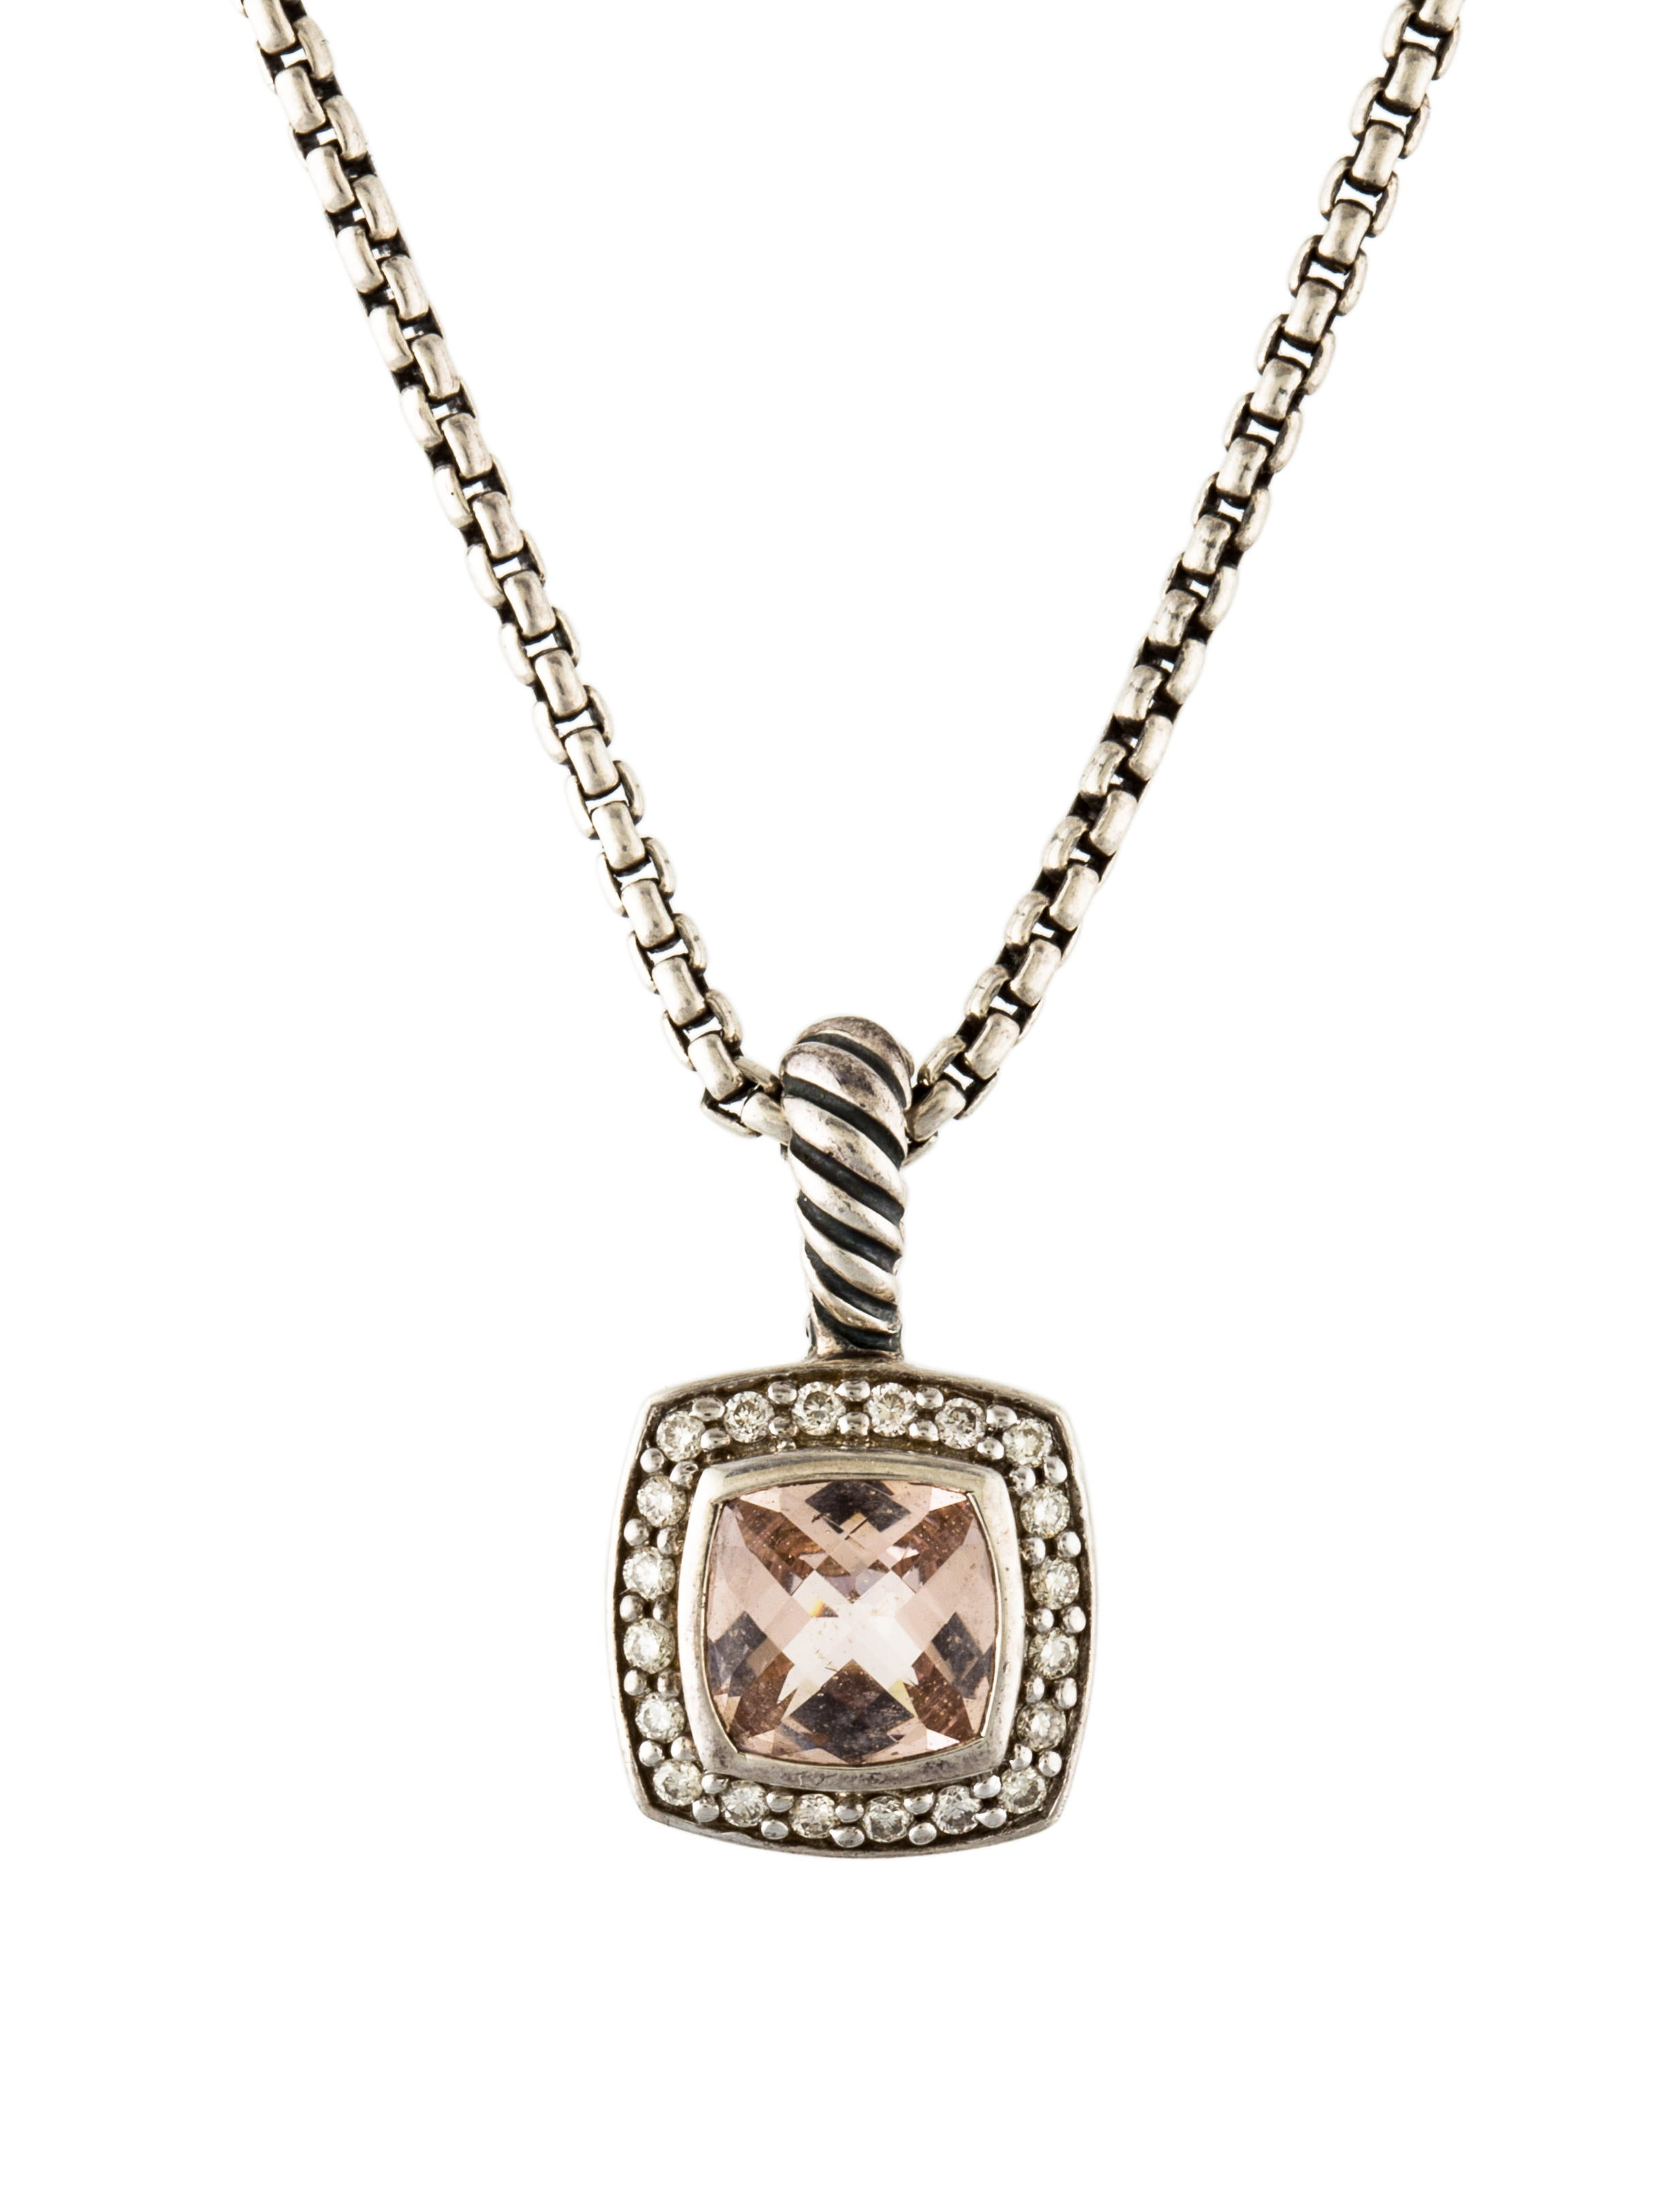 necklace cushion shape morganite diamond jewelry product shipping pink pendant round watches free cali trove ct fashion today gold overstock rose in